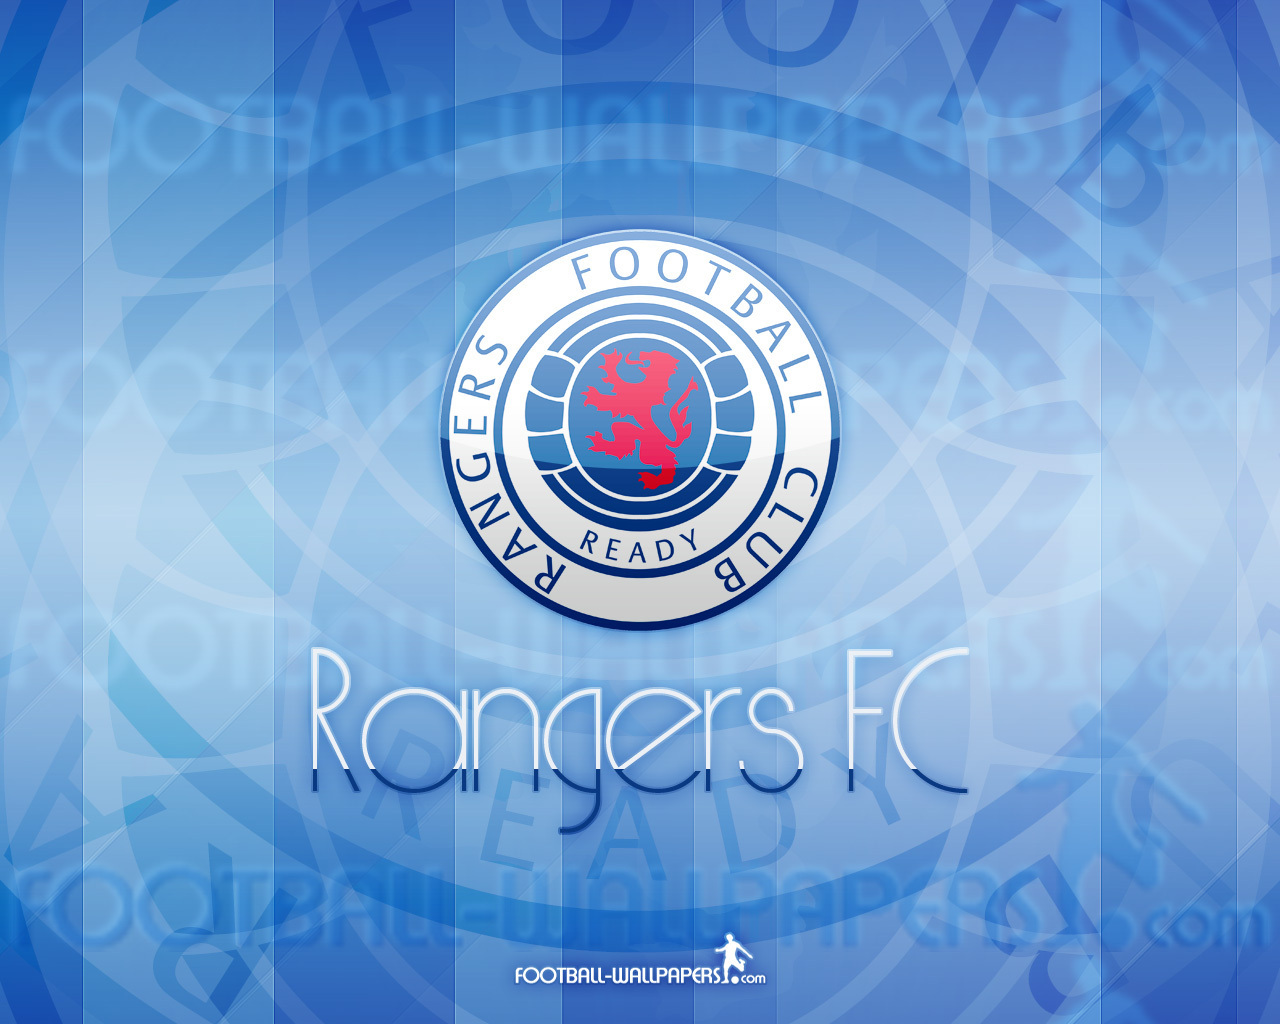 Rangers FC   Rangers Football Club Wallpaper 22470146 1280x1024